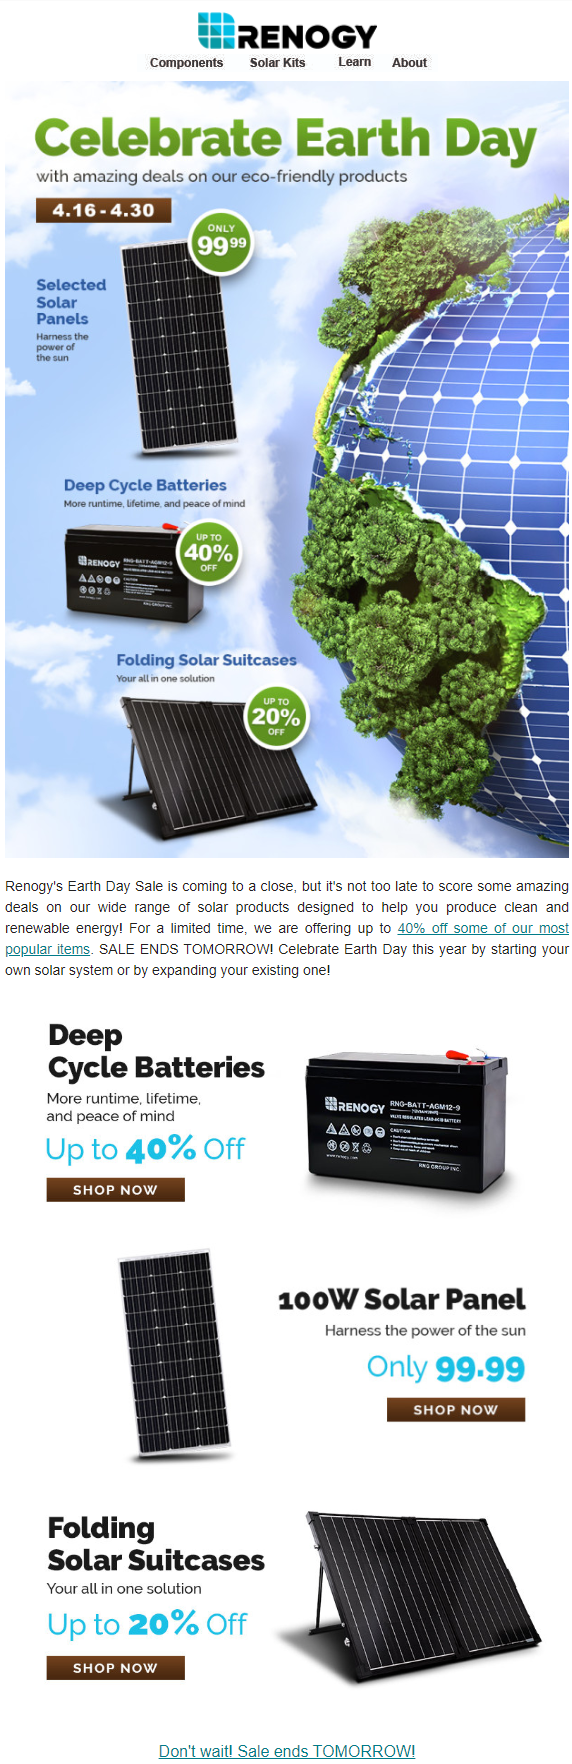 renogy-solar-final-chance-sale-ends-tomorrow-save-up-to-40-on-select-items